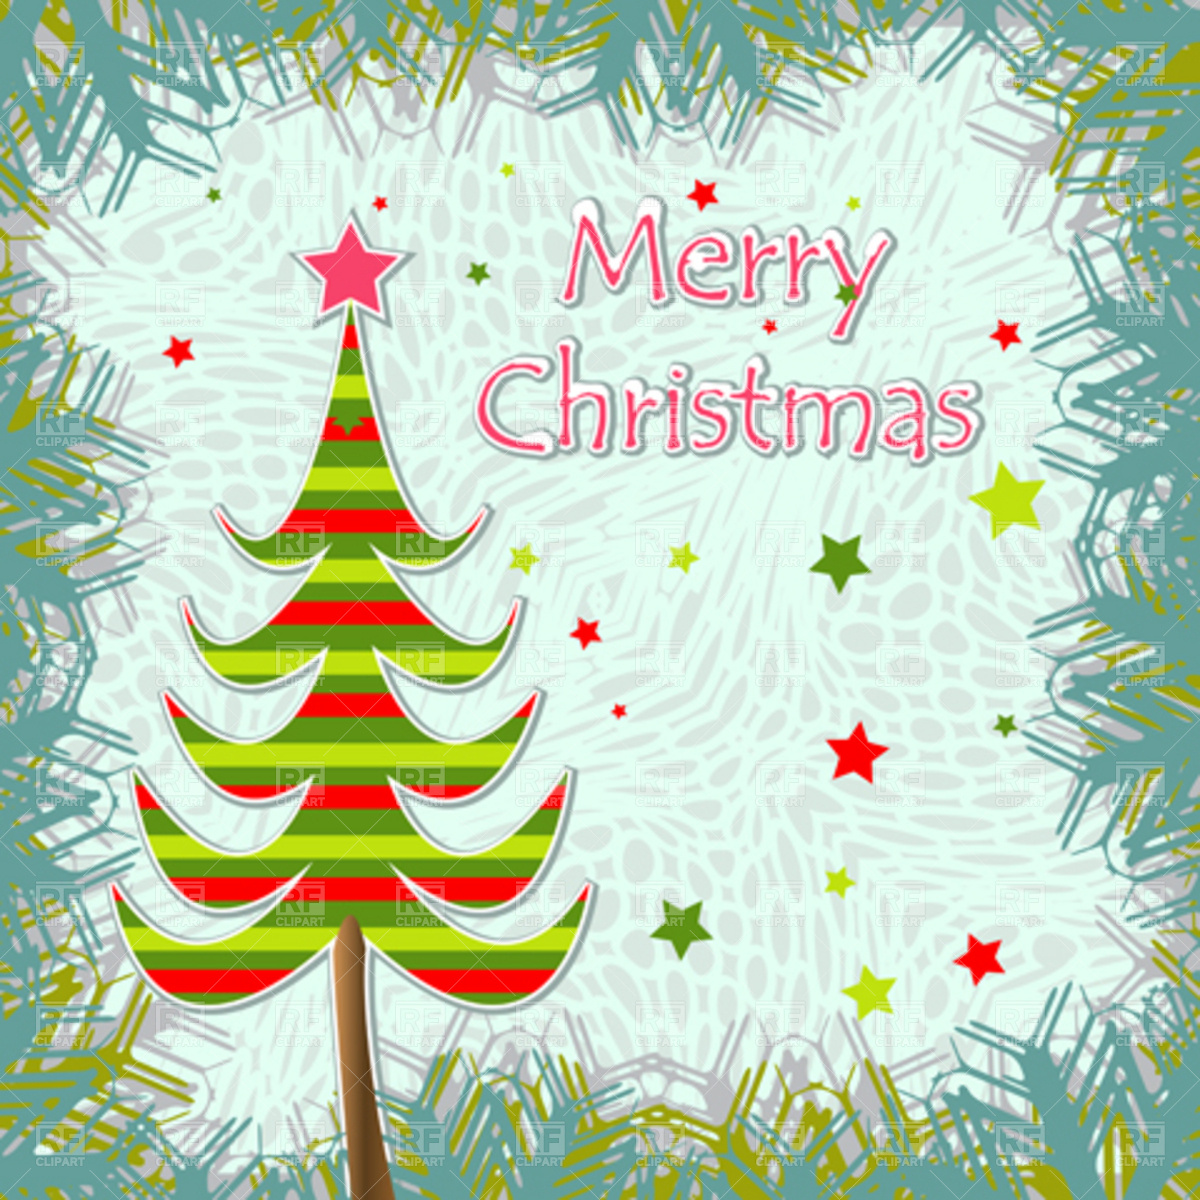 card template free - 20 christmas greeting card free template images free